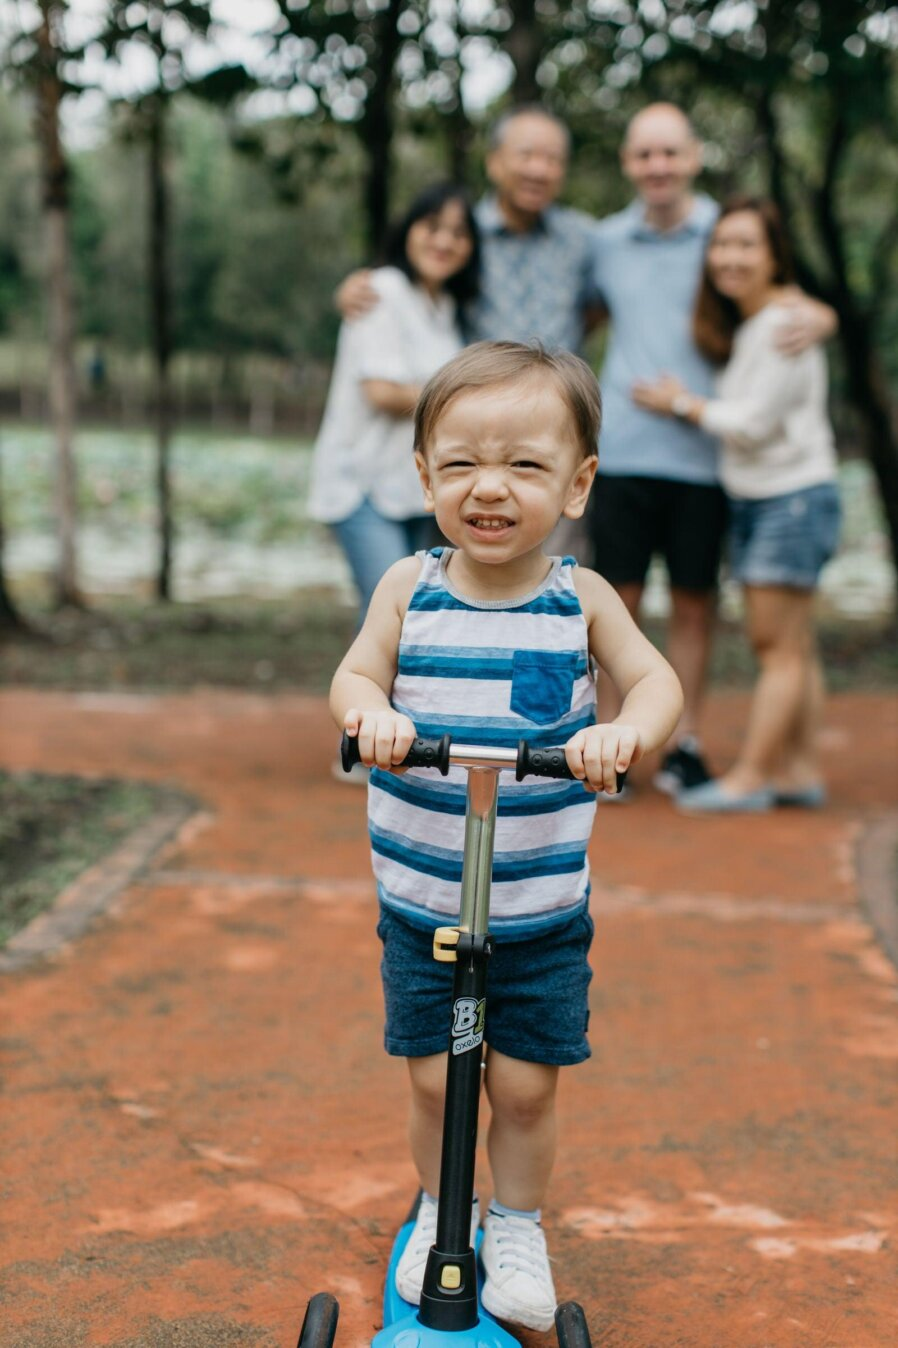 Cute little boy on scooter Damansar Tropical Family Portrait Session in Kuala Lumpur Malaysia